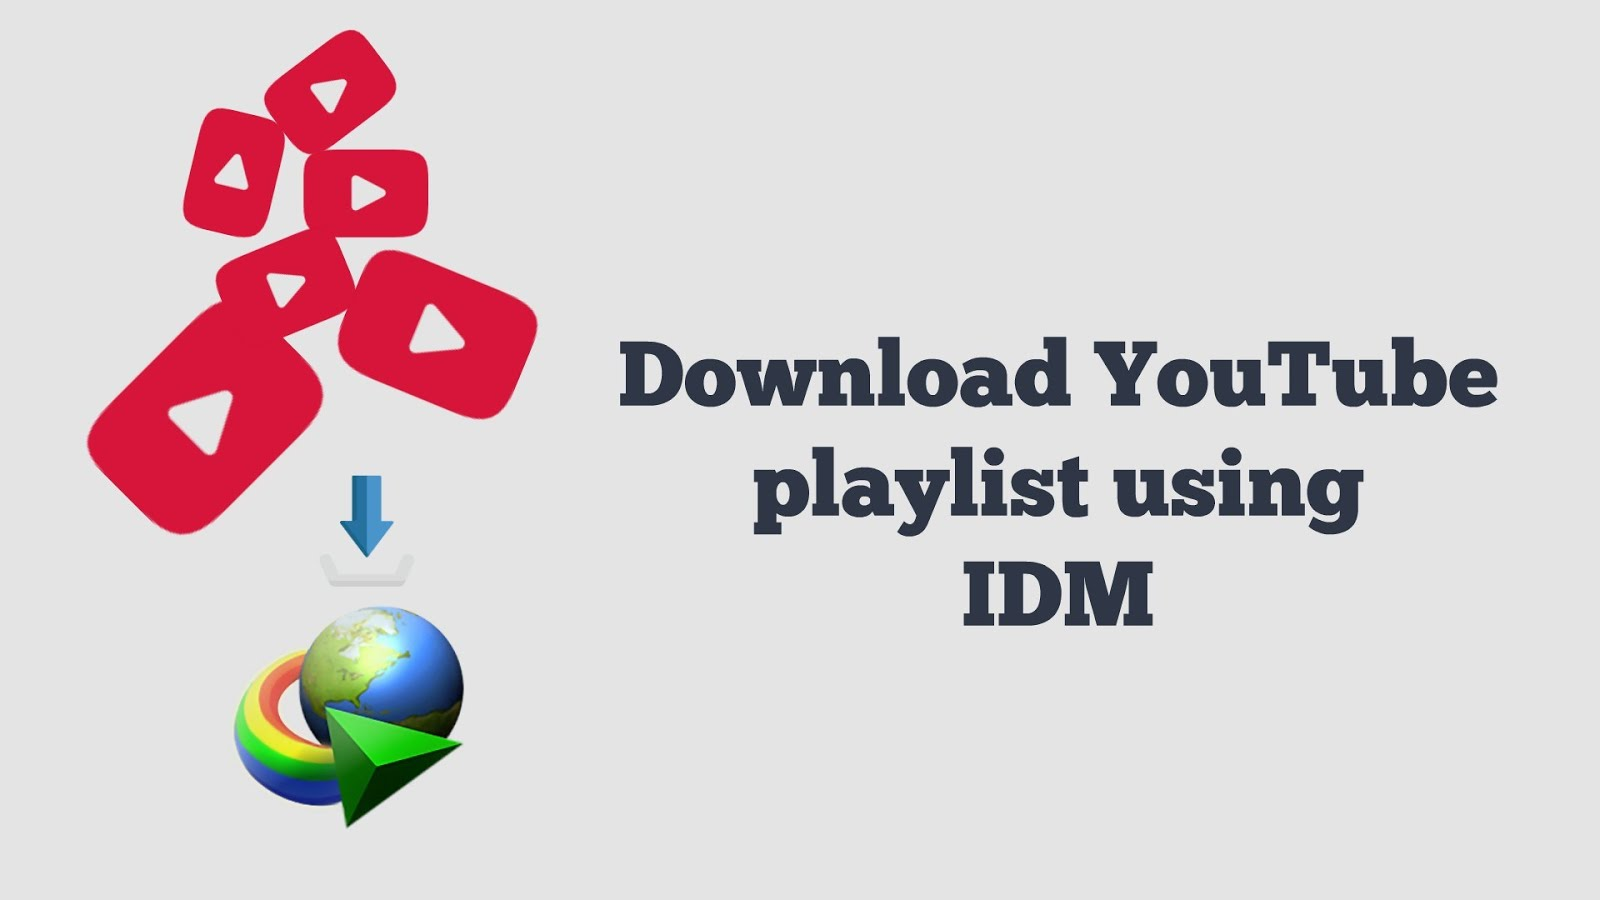 How to download full playlist of youtube videos using idm